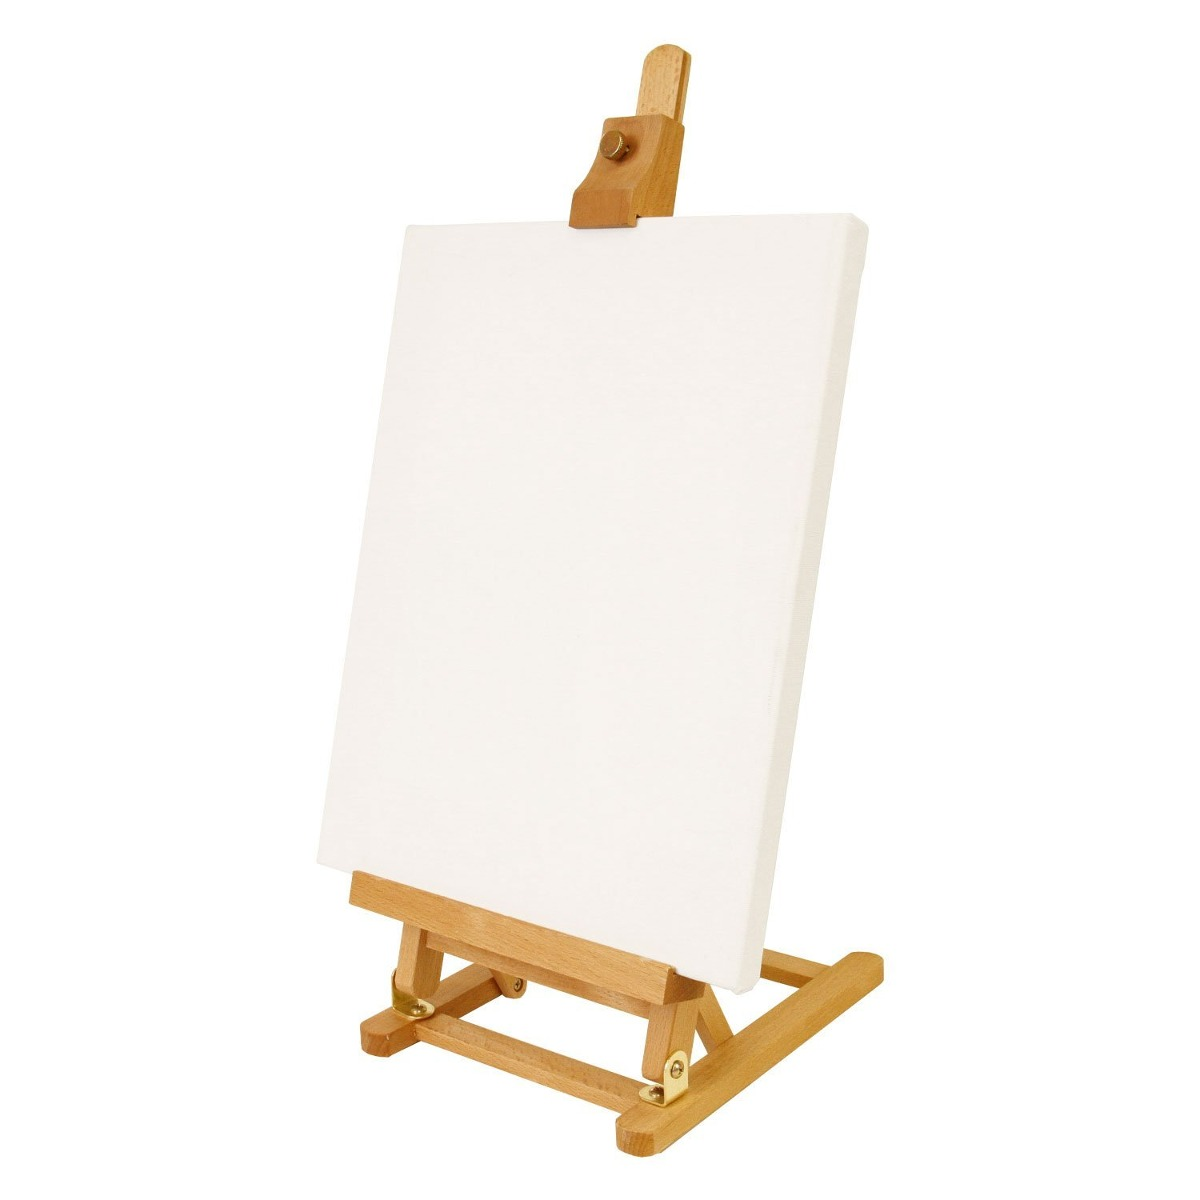 Us Art Supply Small Tabletop Studio H-frame Easel